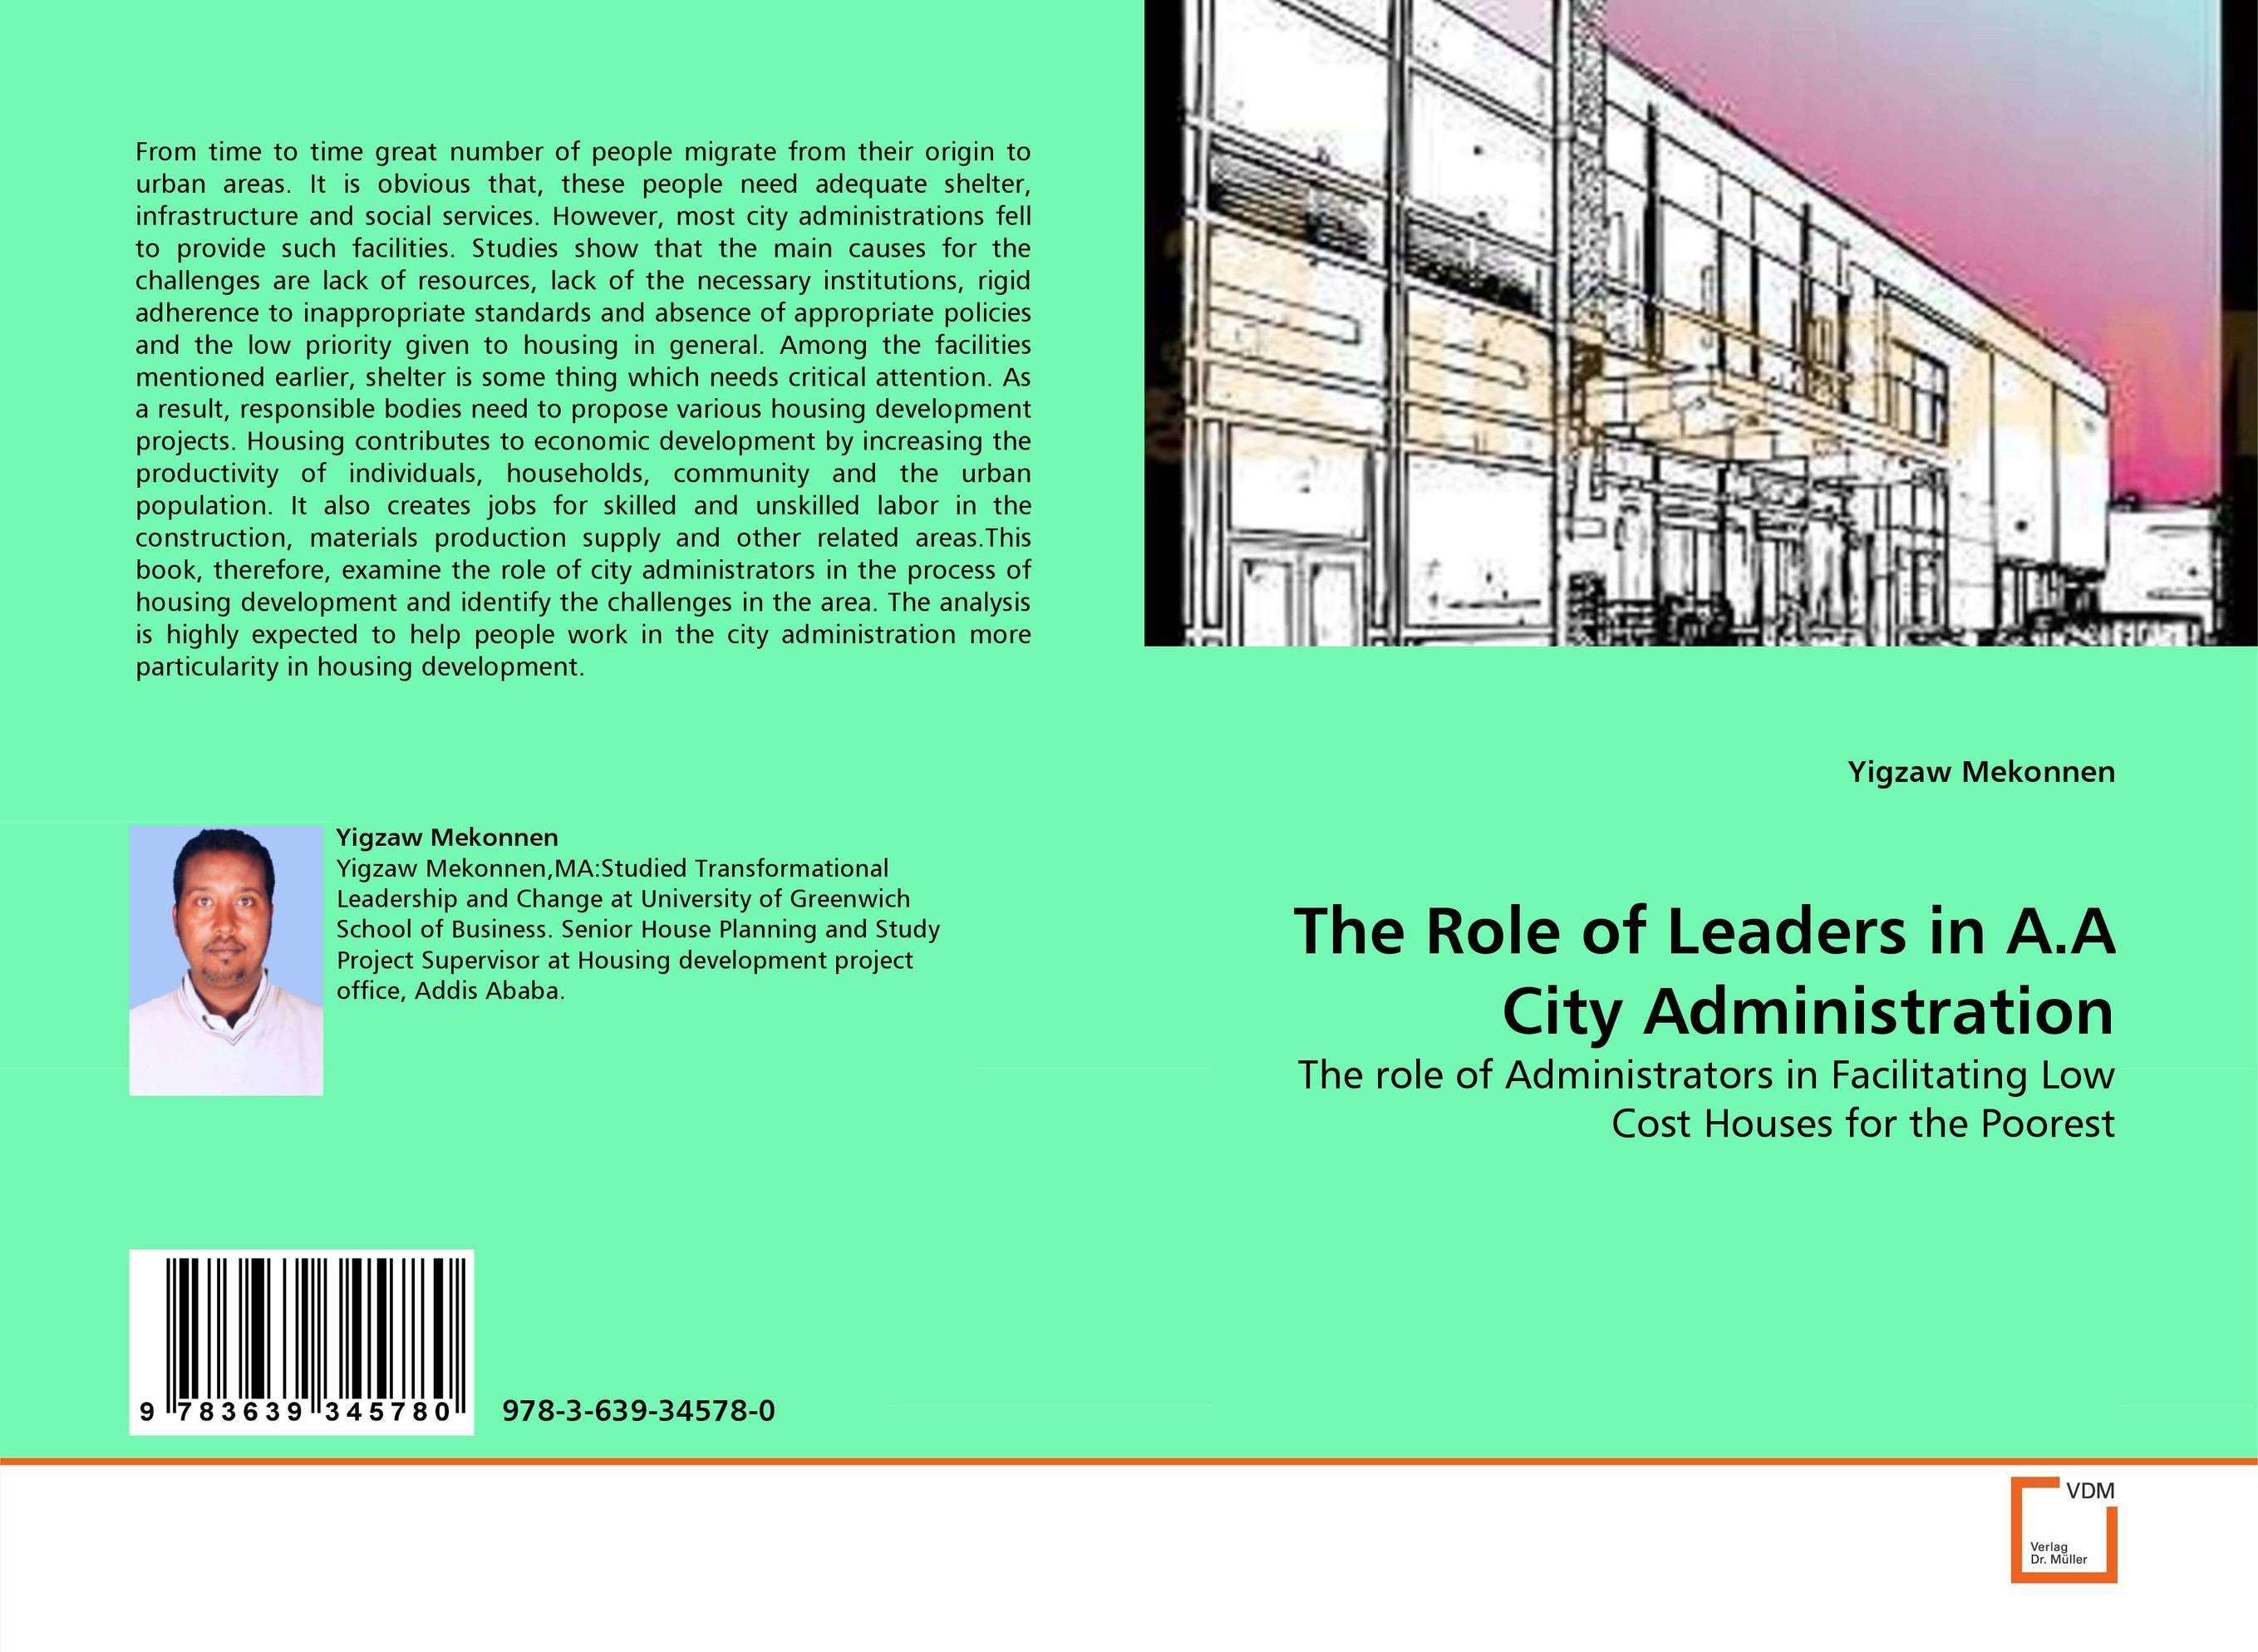 The Role of Leaders in A.A City Administration